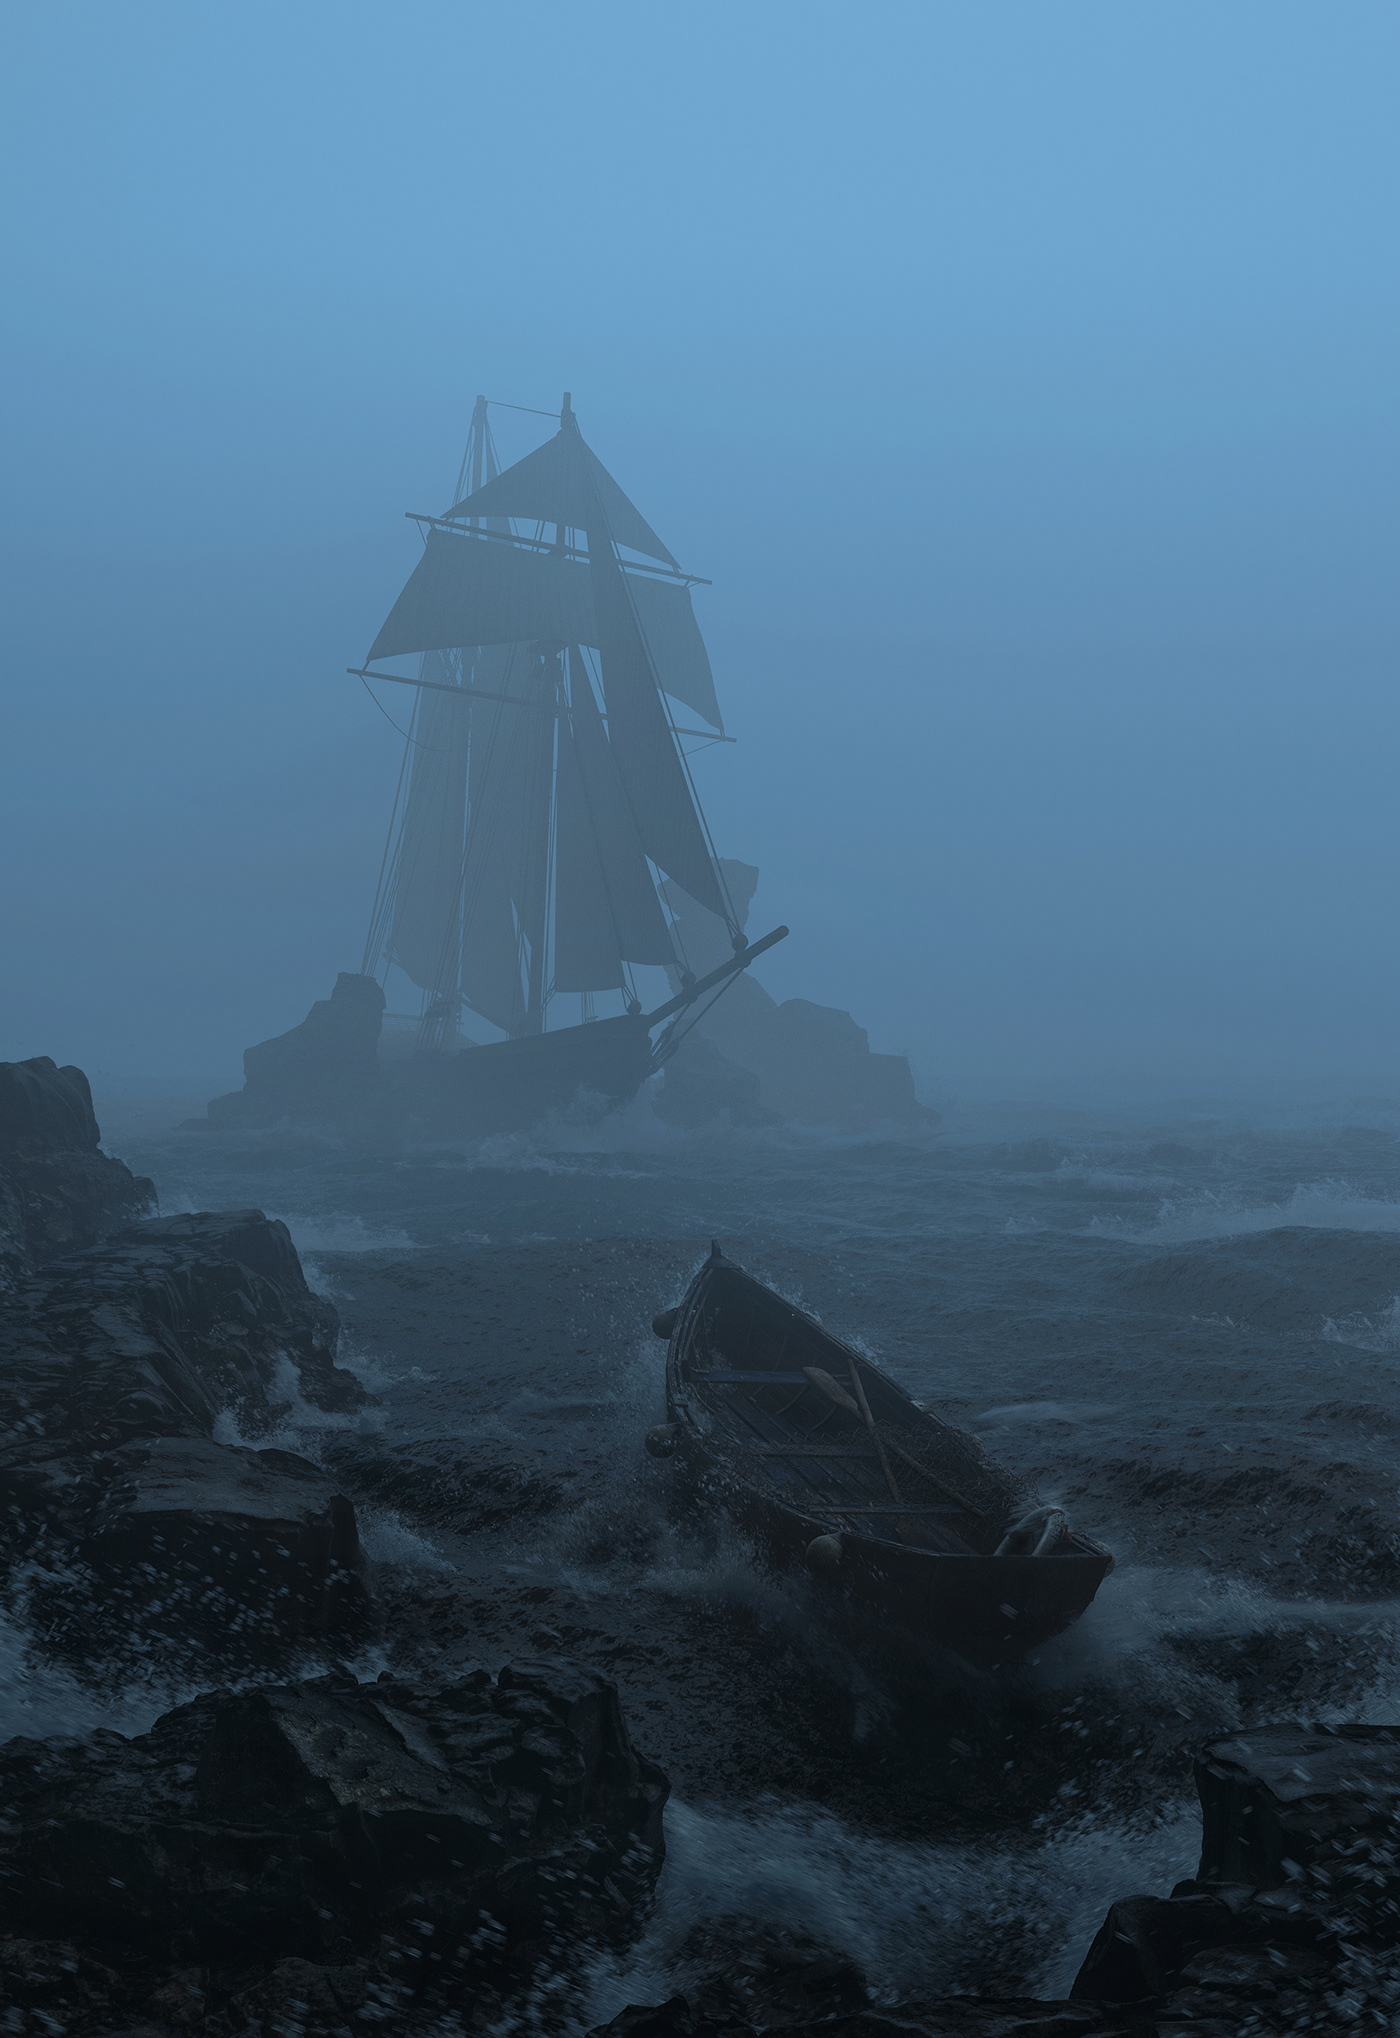 Image may contain: outdoor, ship and fog